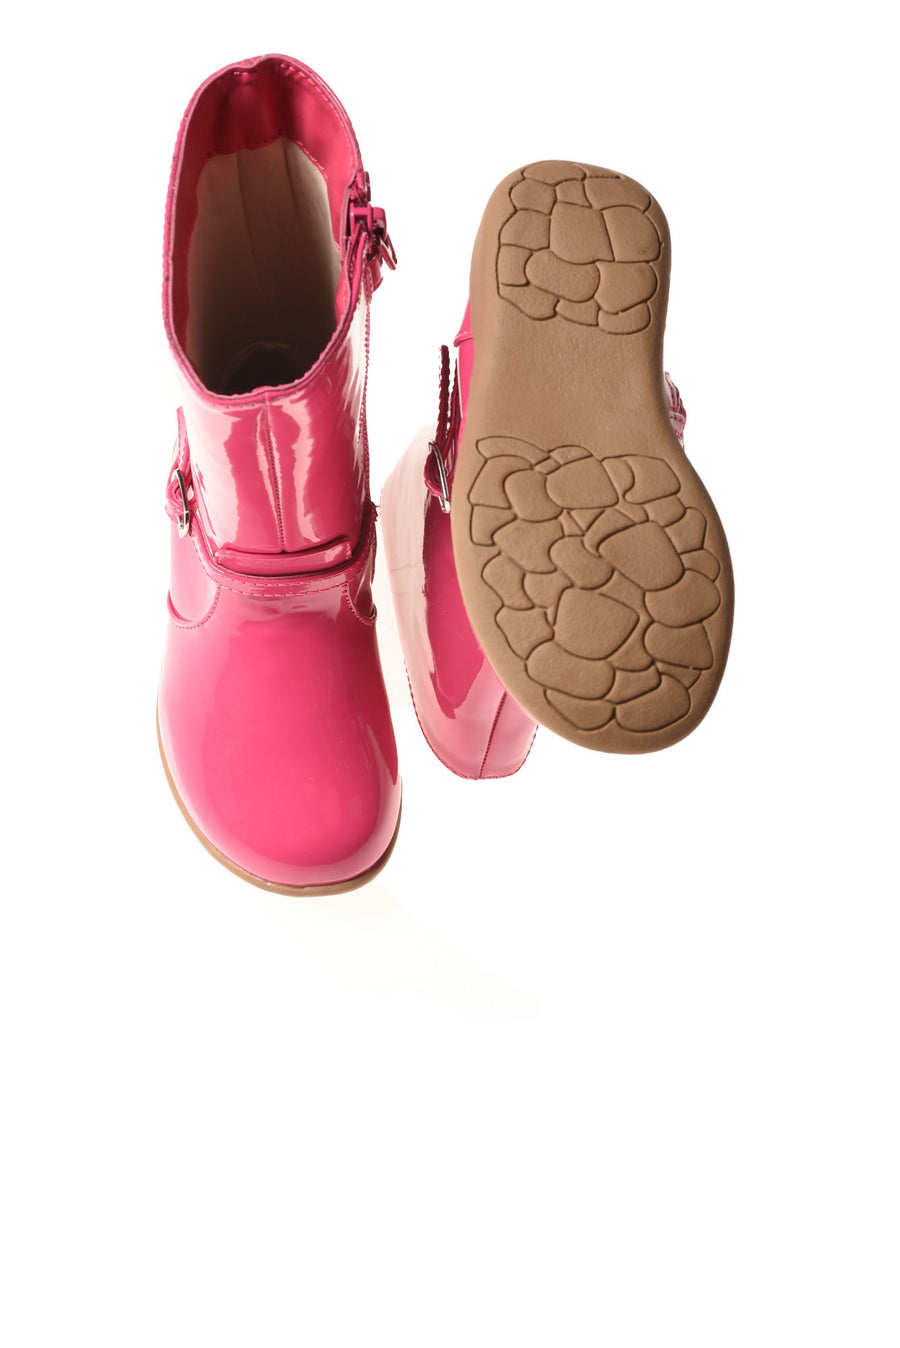 USED No Brand Toddler Girl's Boots Pink 5